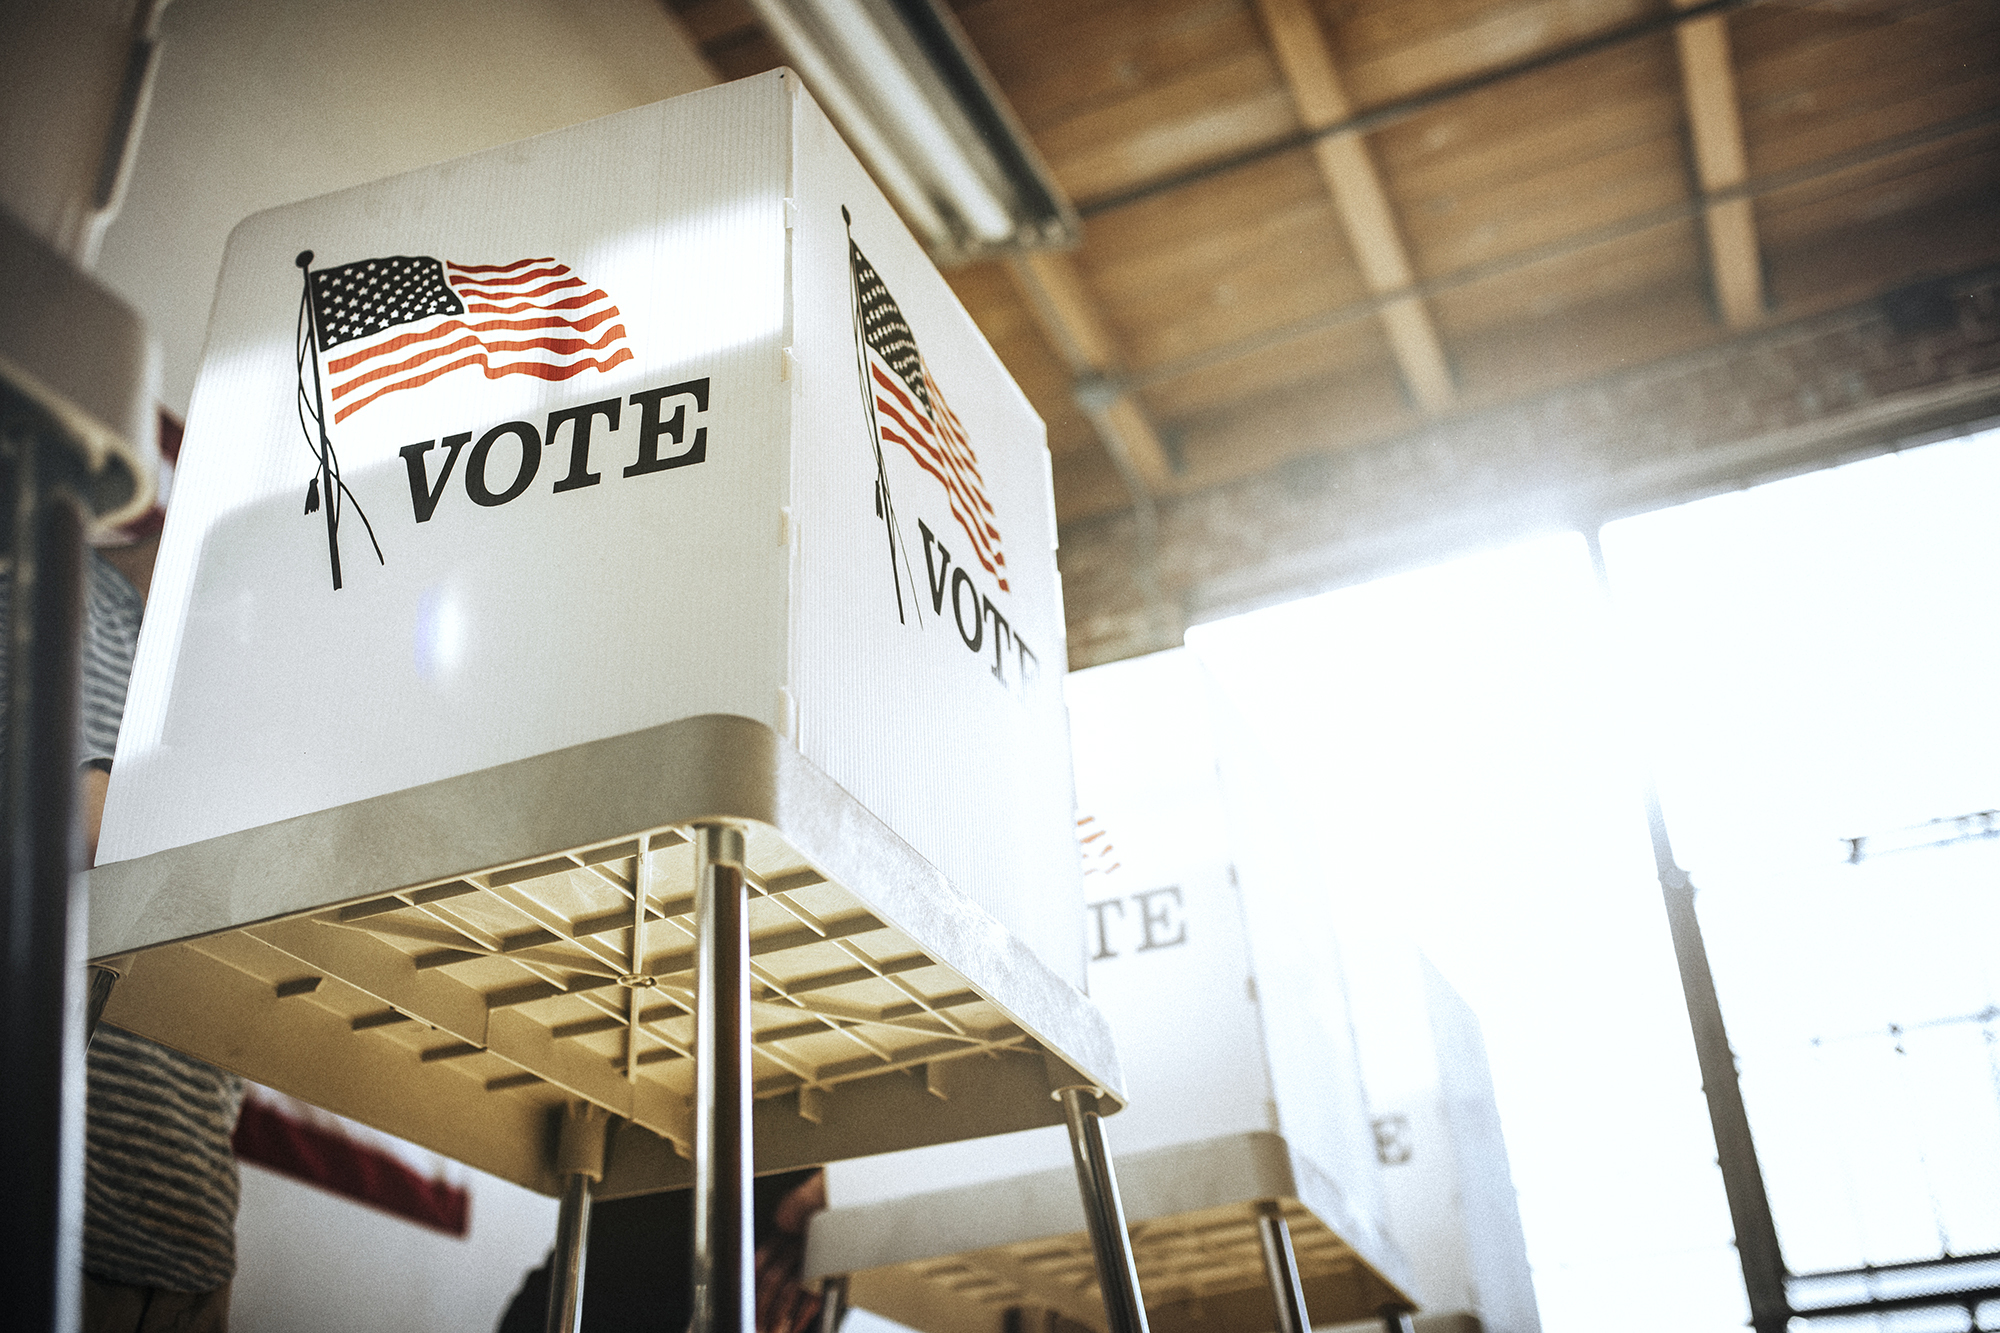 National Poll Worker Recruitment Day